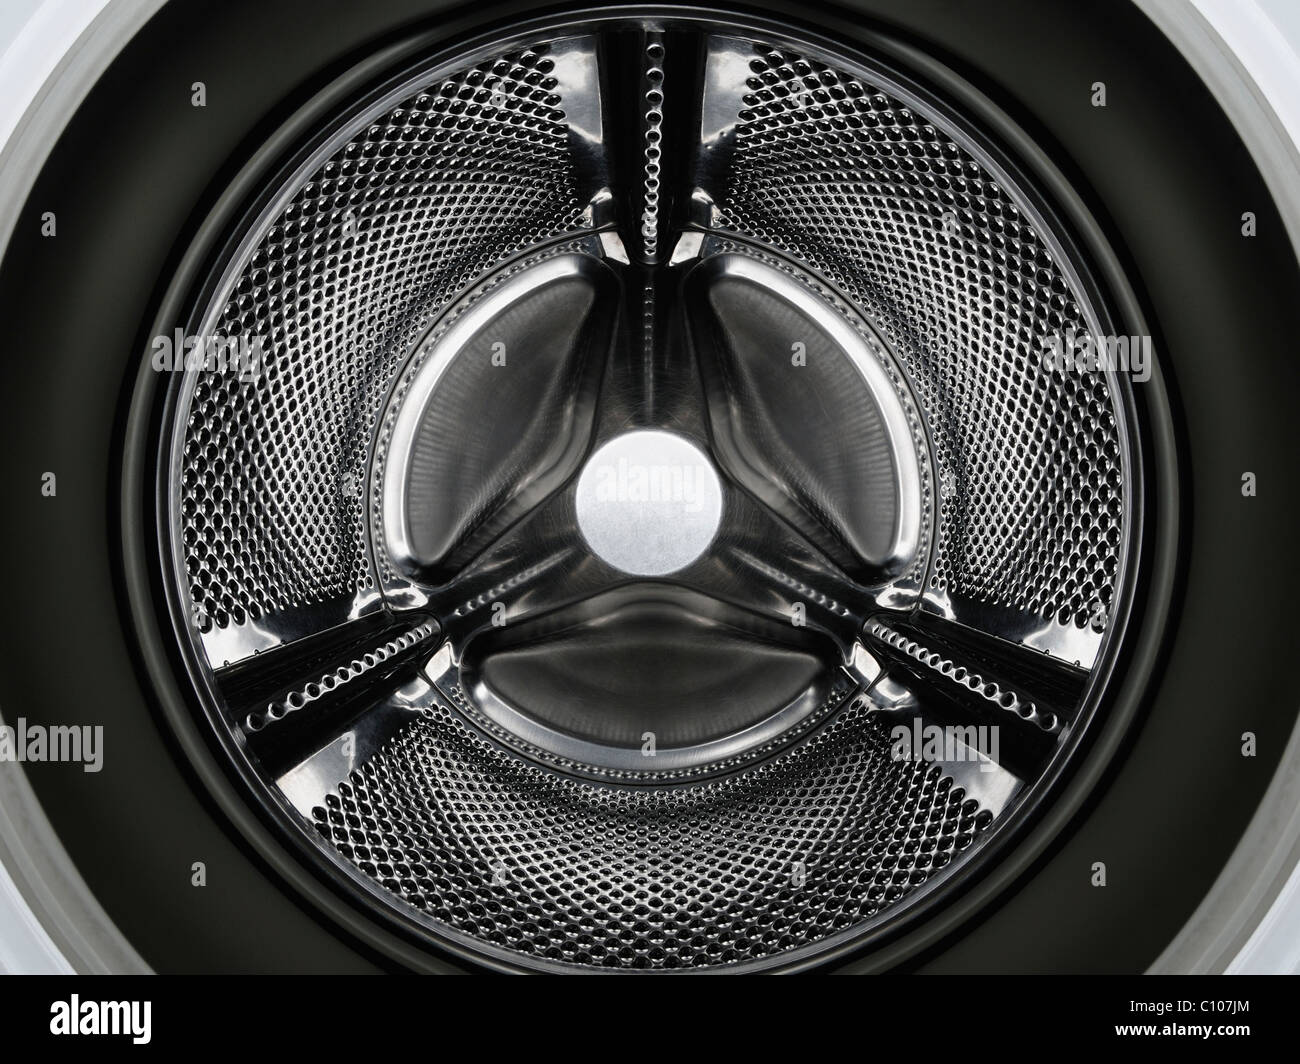 Washing Machine Drum - Stock Image